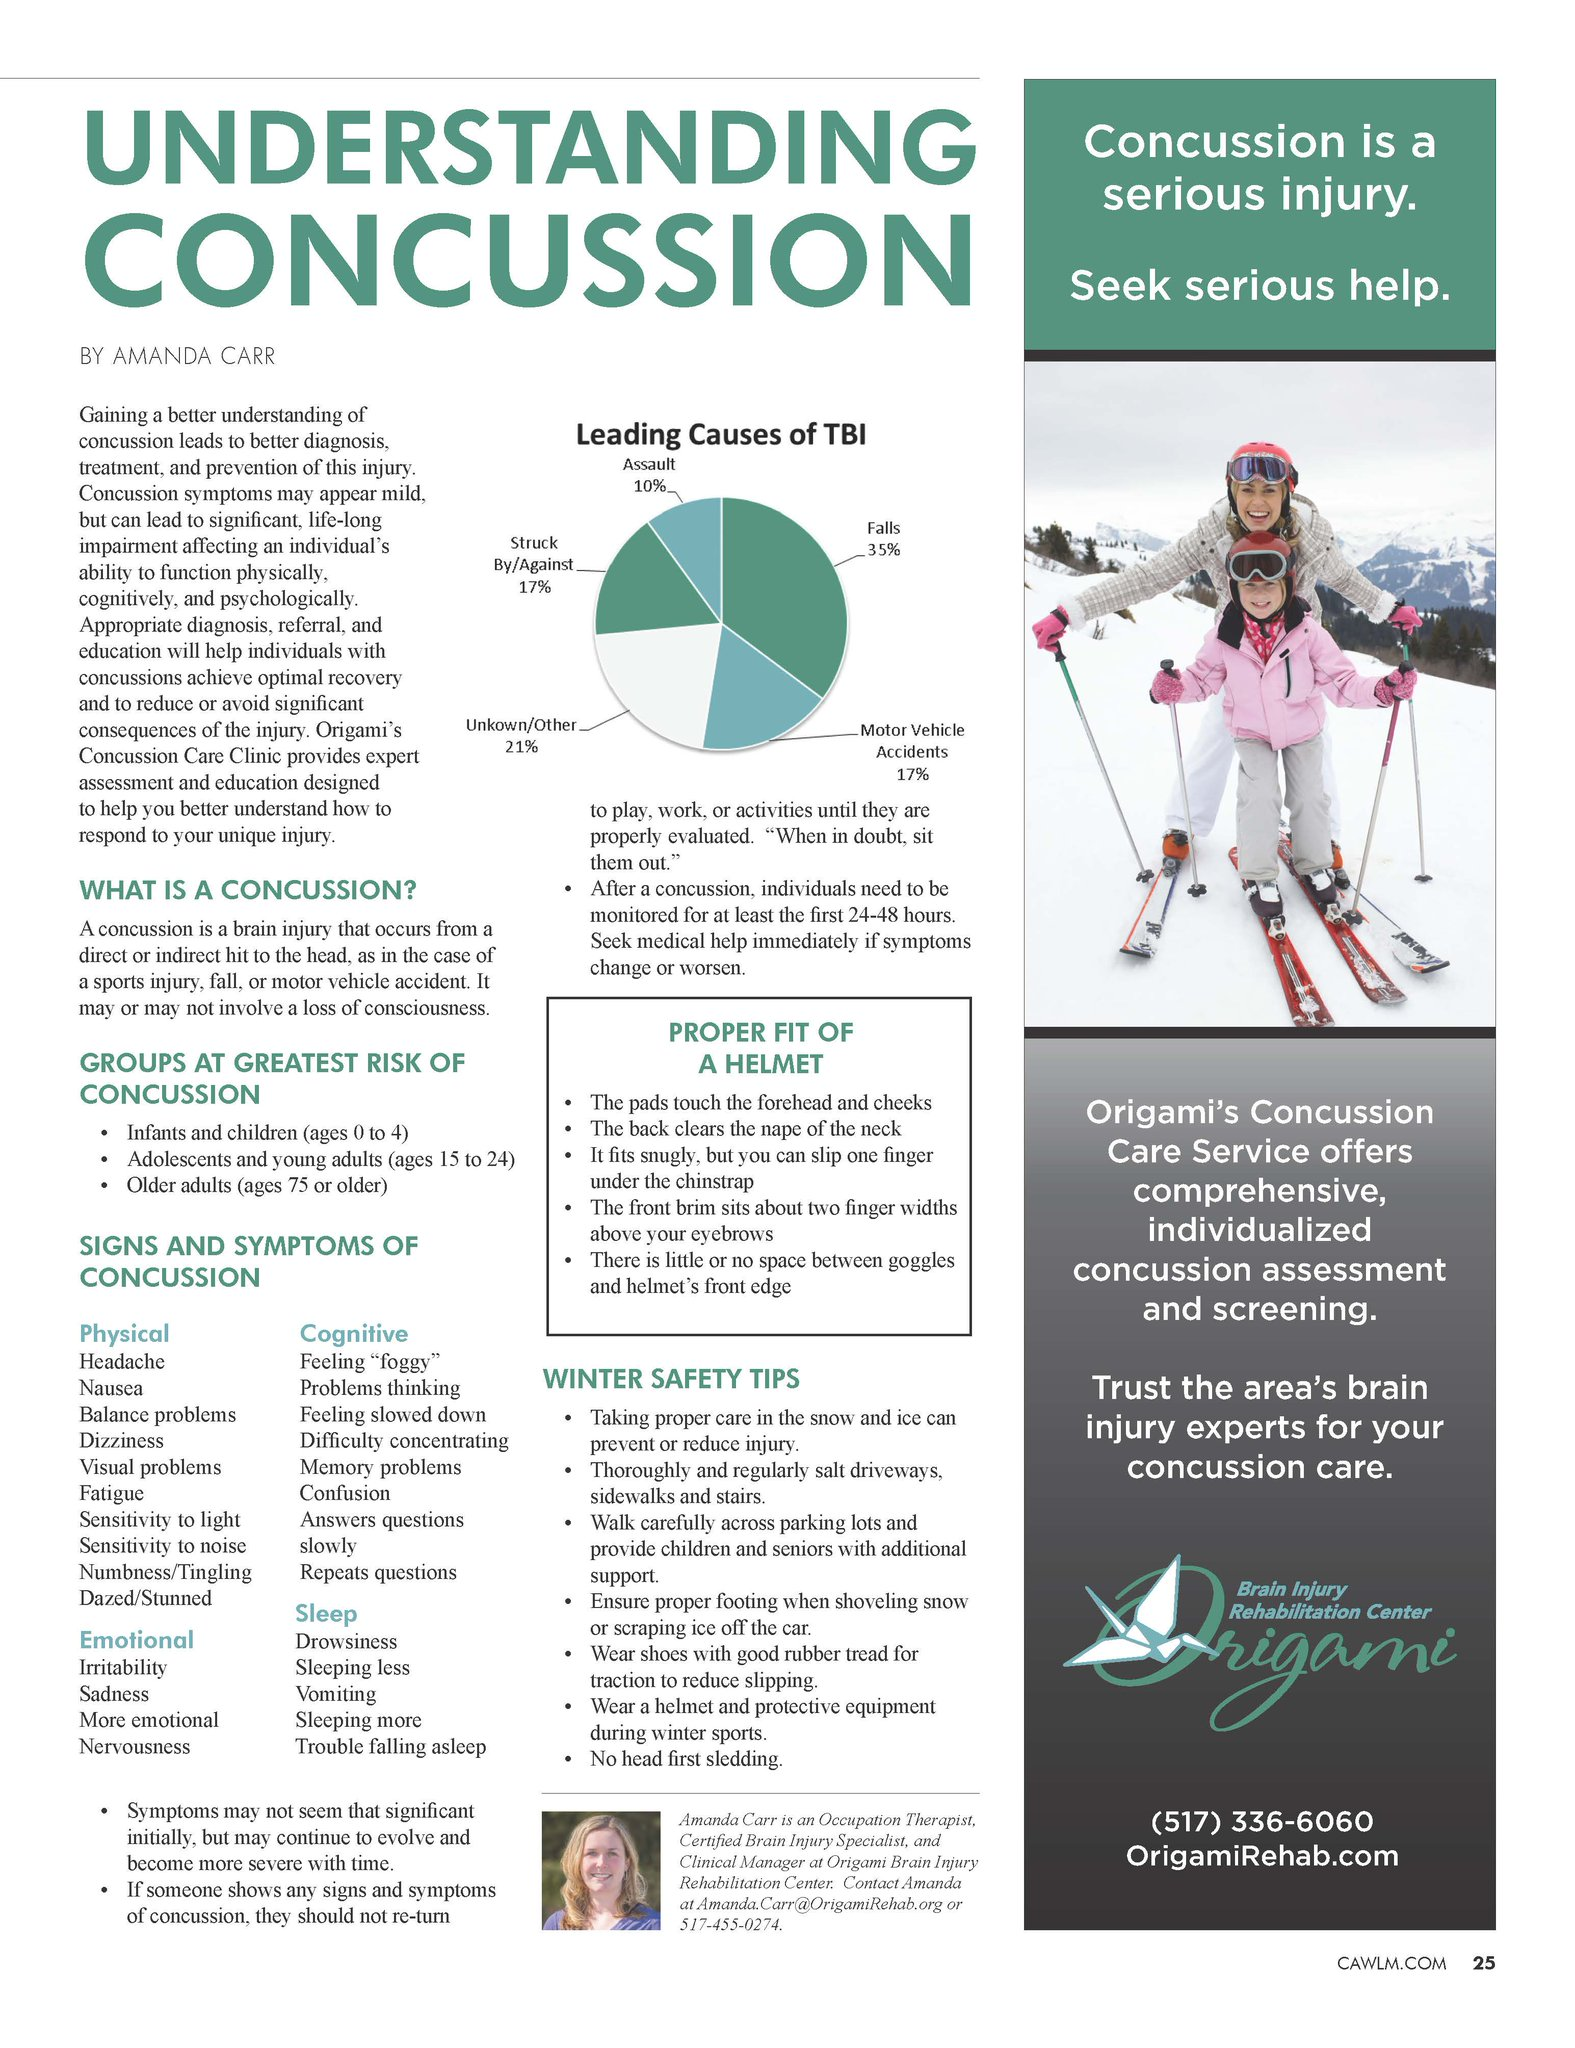 Origami Rehab On Twitter Concussion Info And Winter Safety Tips